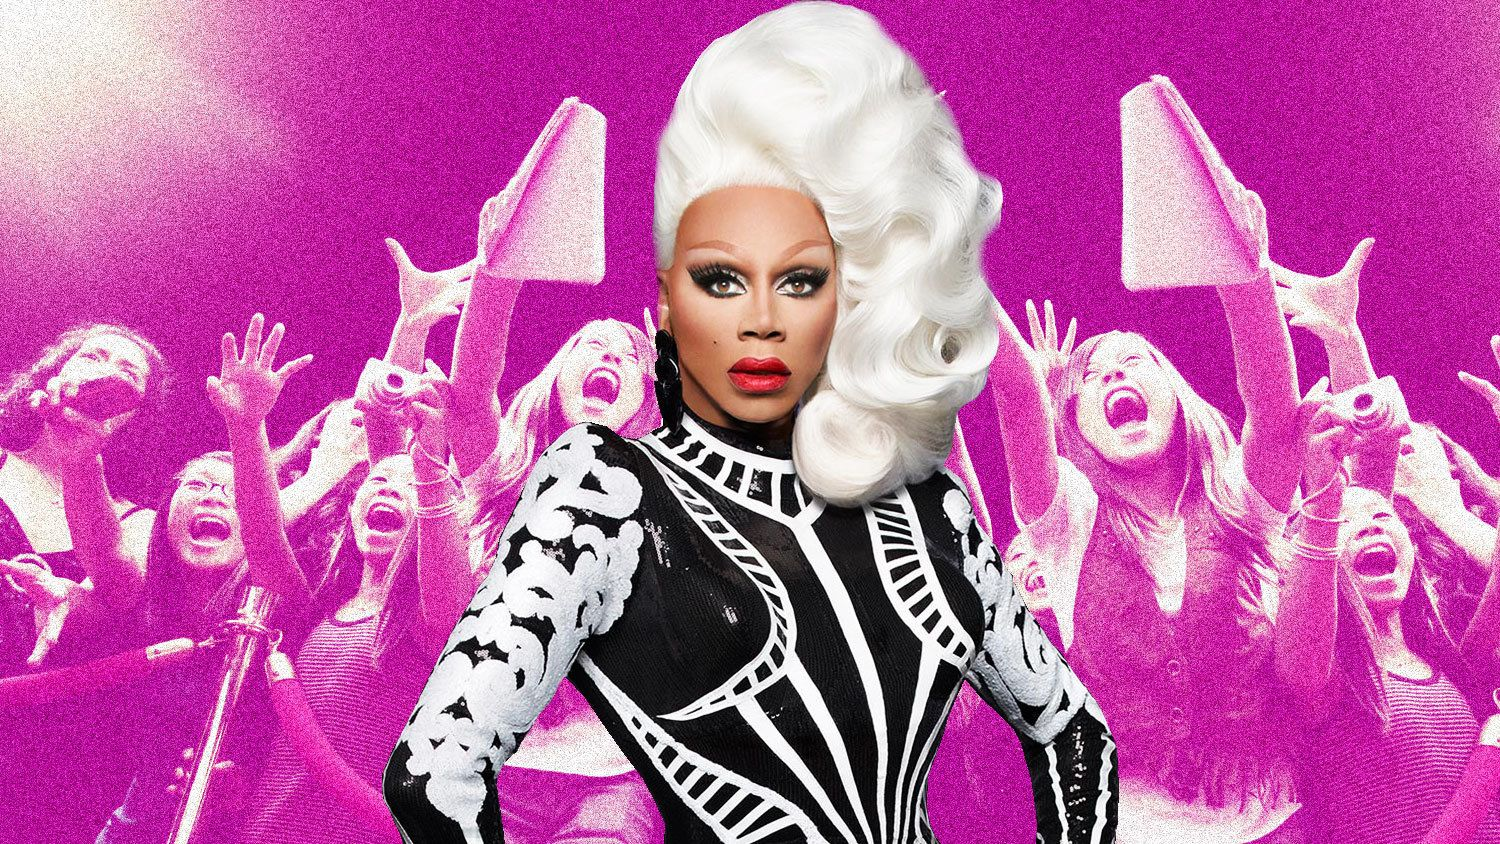 """RuPaul's Drag Race"" has amassed a large fan base of teenage girls."